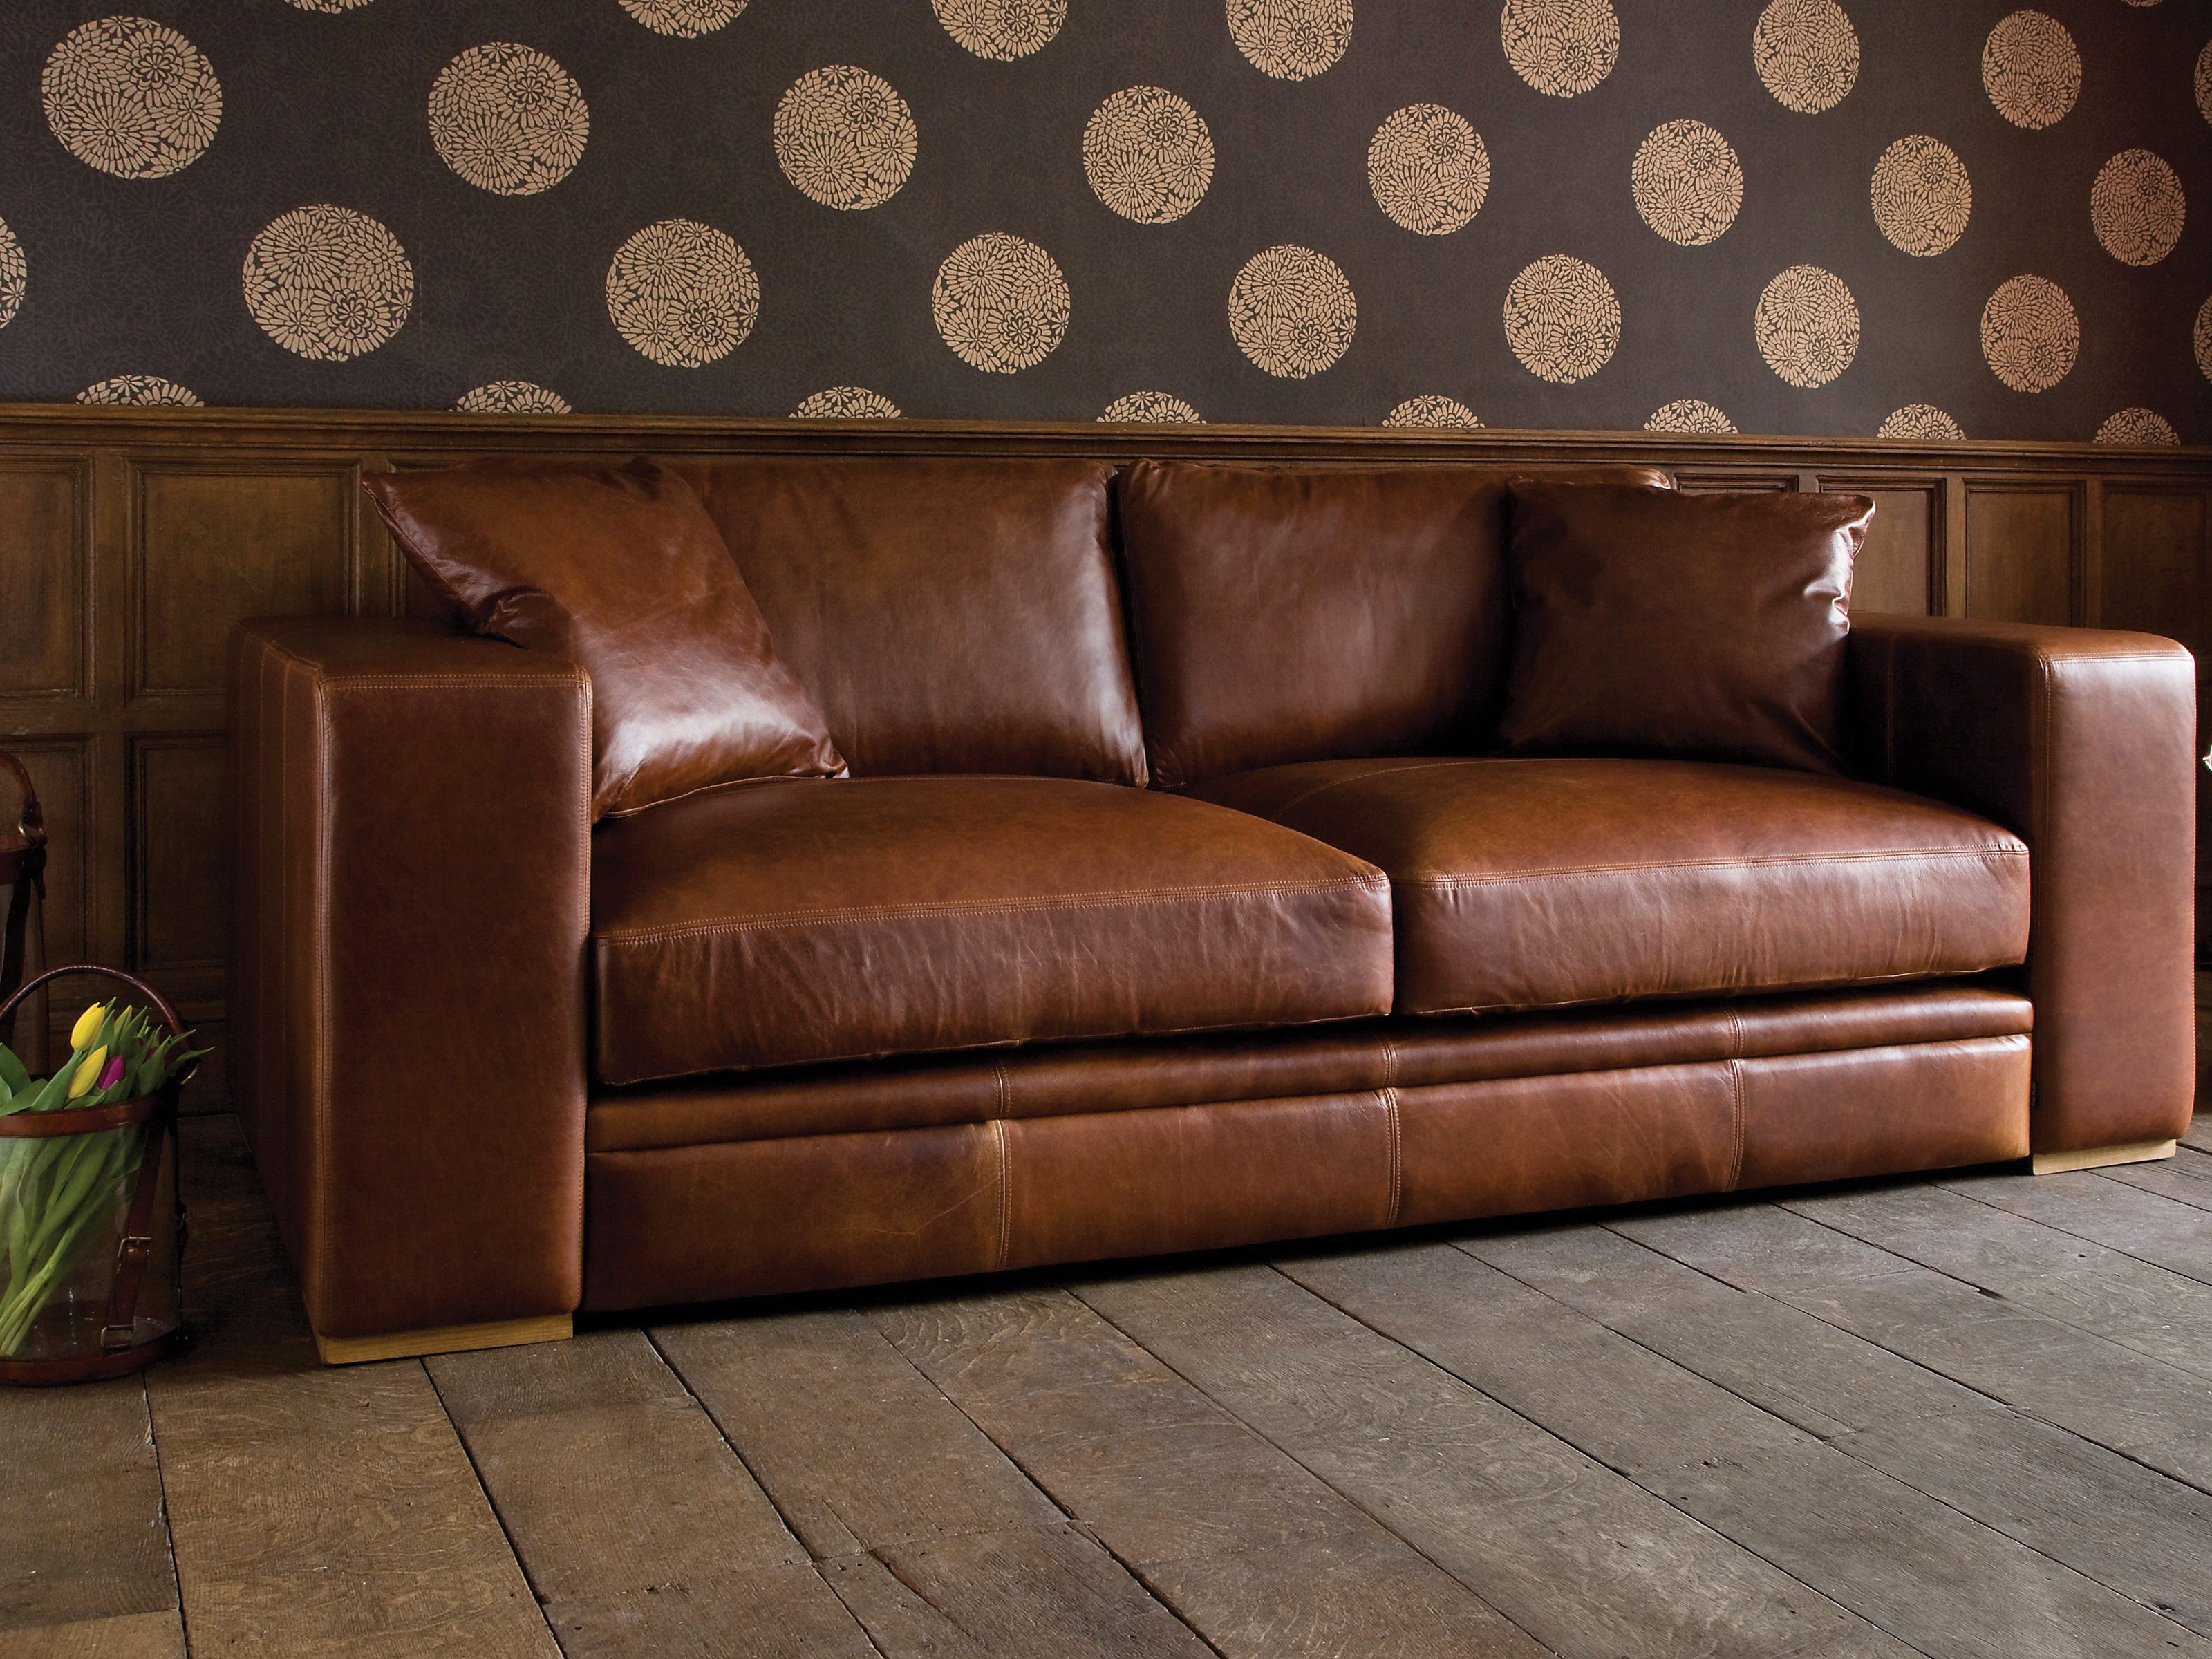 furnishing leather delhi